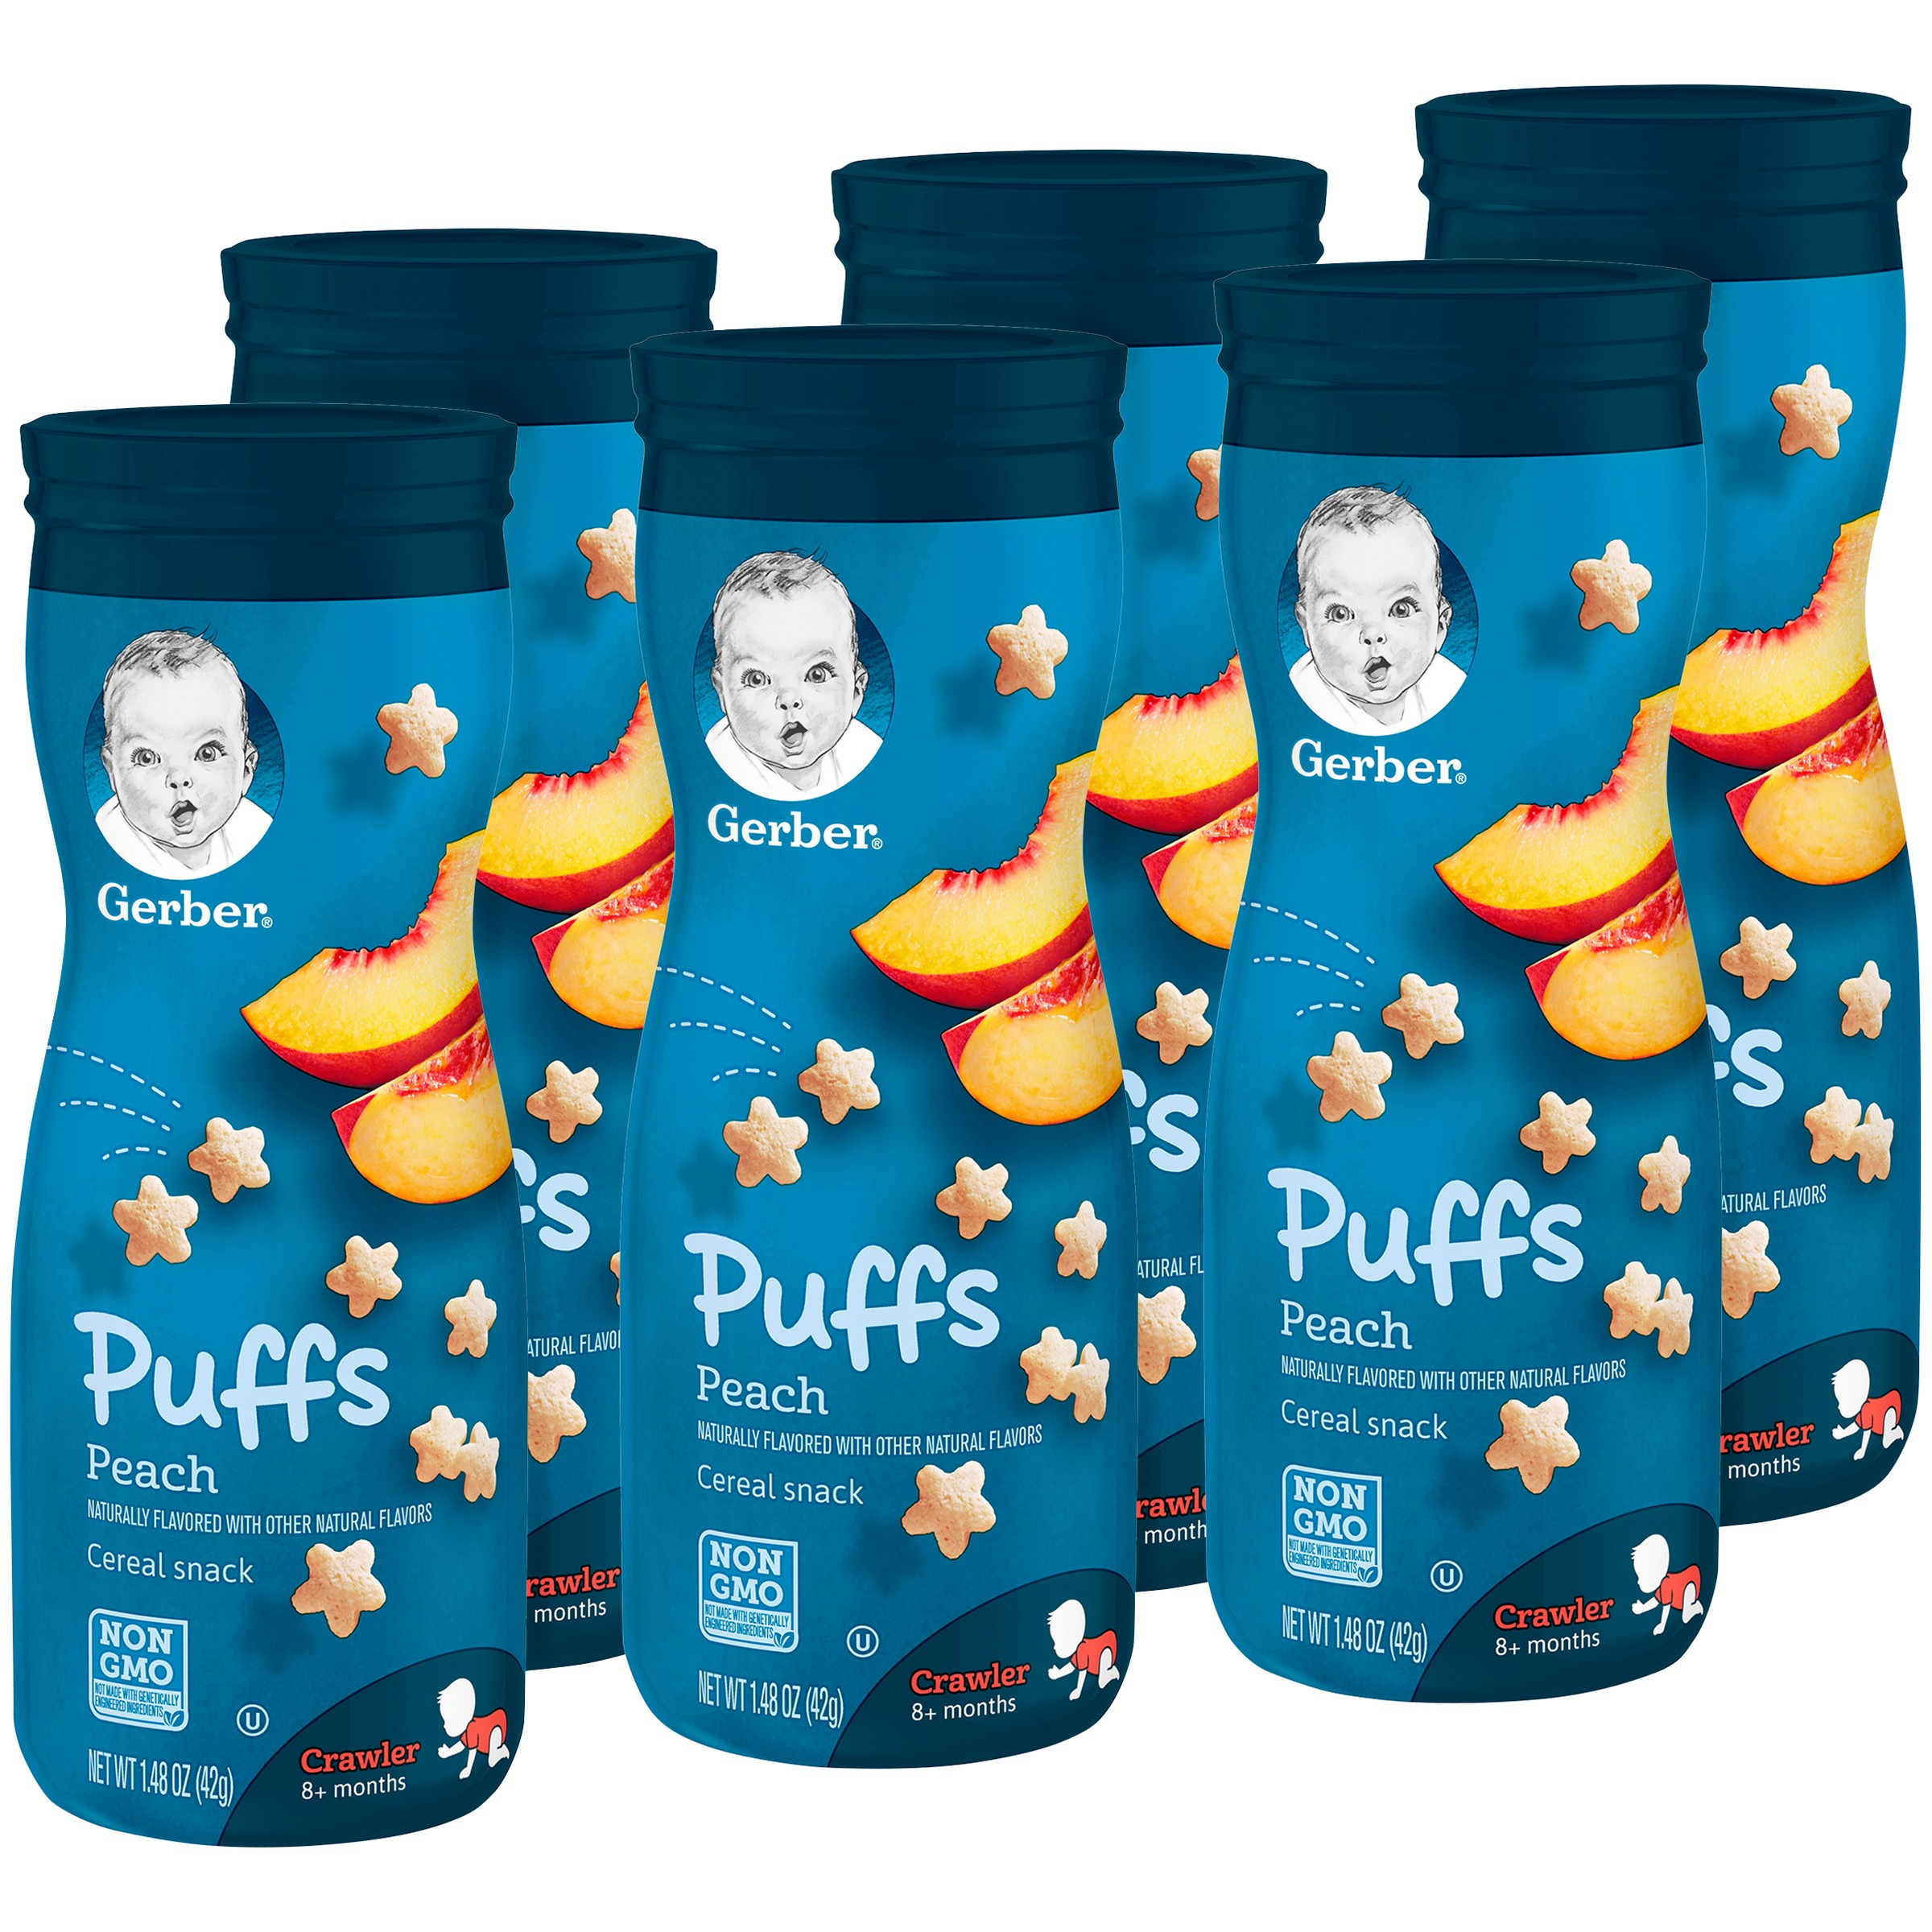 Gerber Puffs Peach, 1.48 oz Canister (Pack of 6)